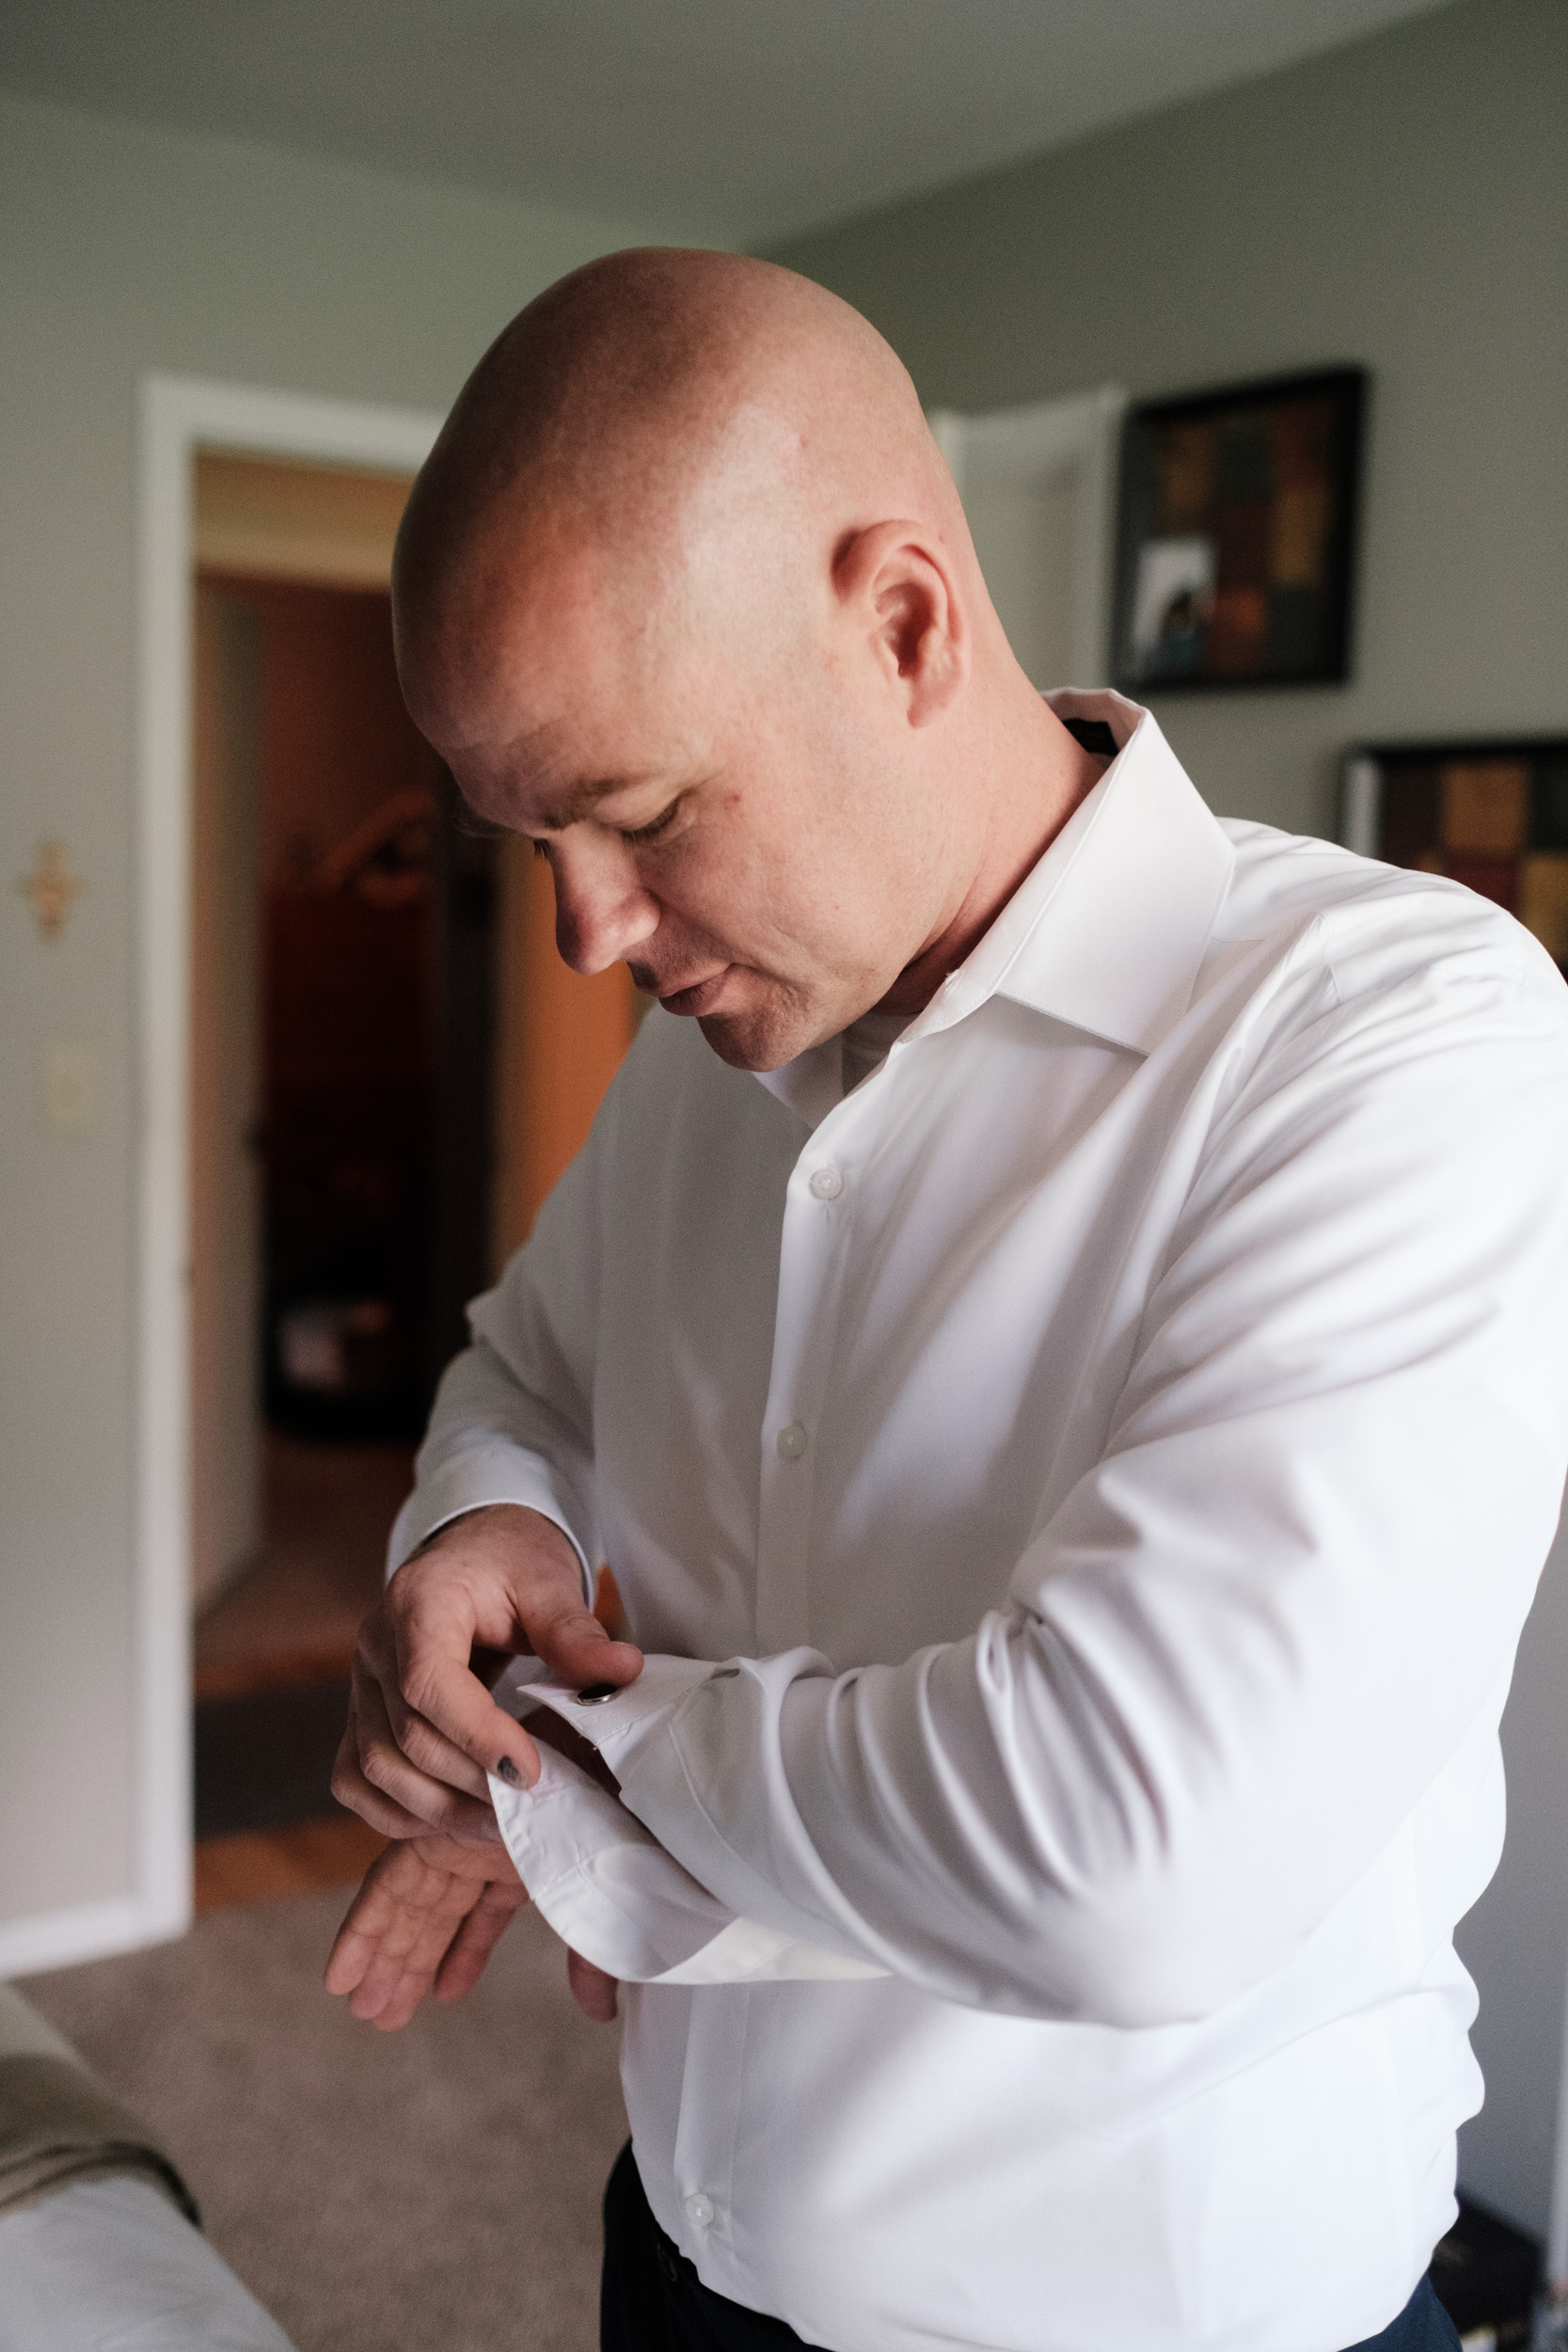 groom getting ready at home in crystal lake on wedding day by rockford photographer